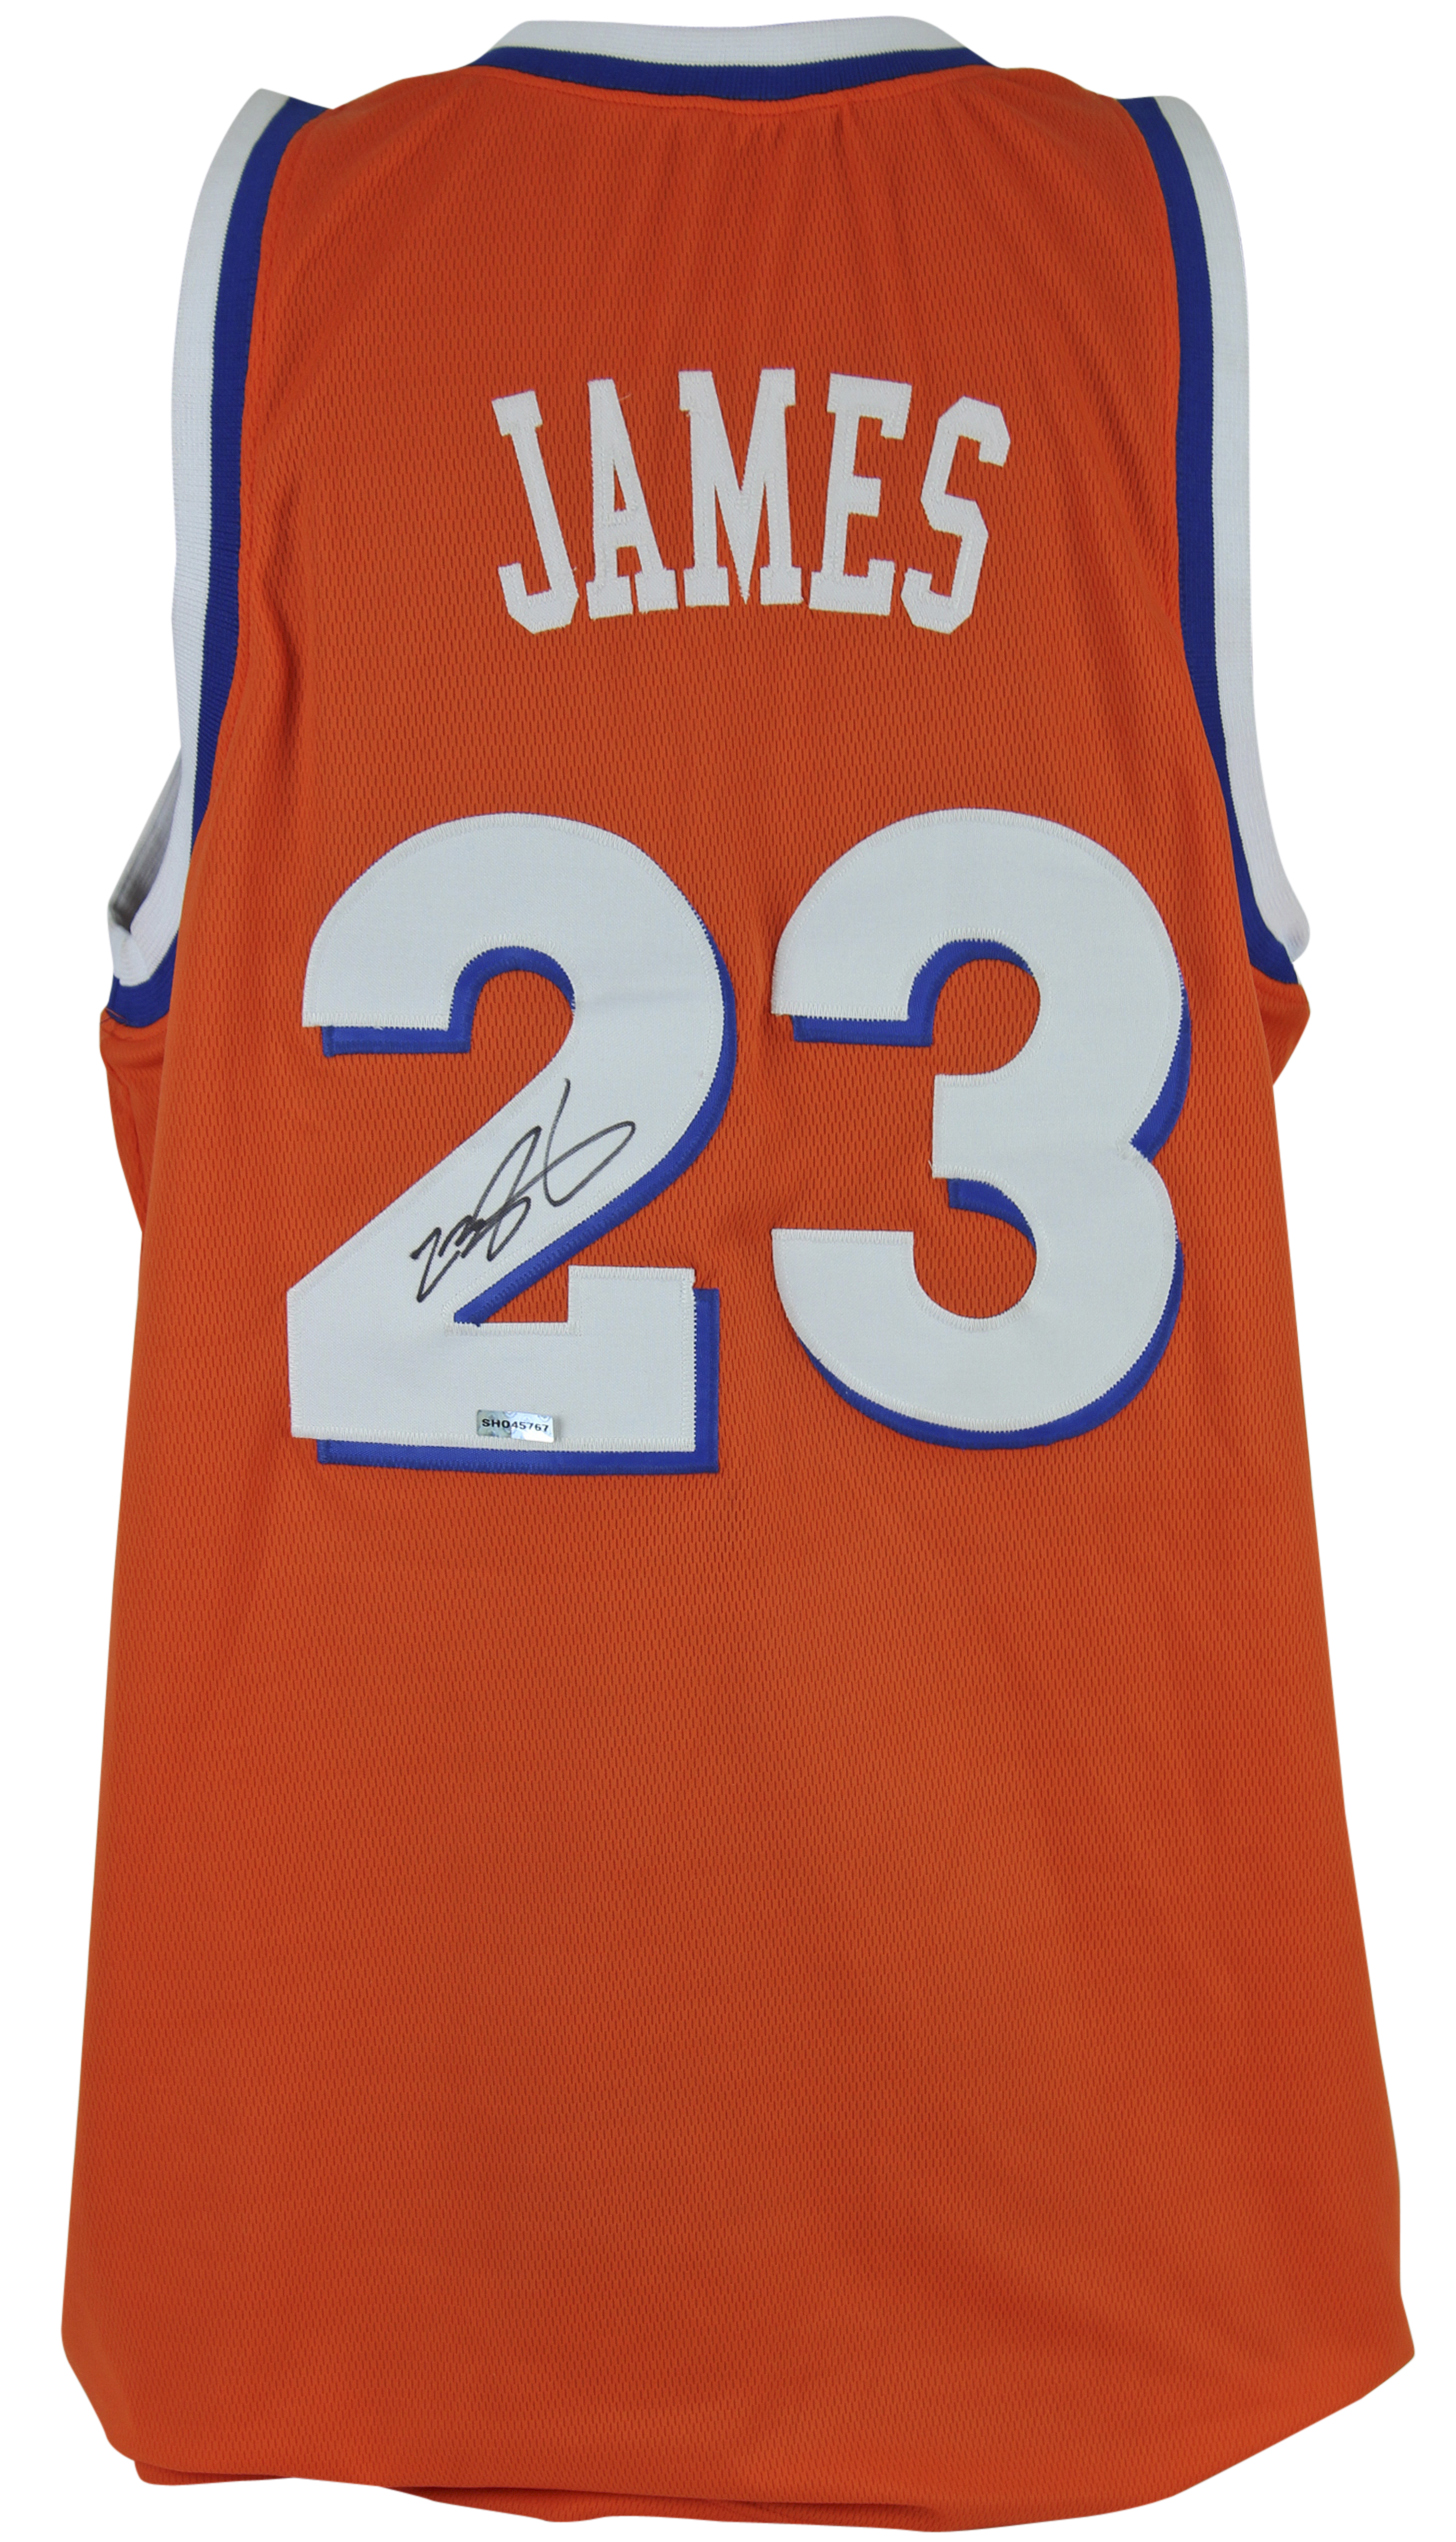 reputable site b4804 f2e6f Cavaliers LeBron James Authentic Signed Orange Throwback Jersey UDA  #SHO45767 | eBay